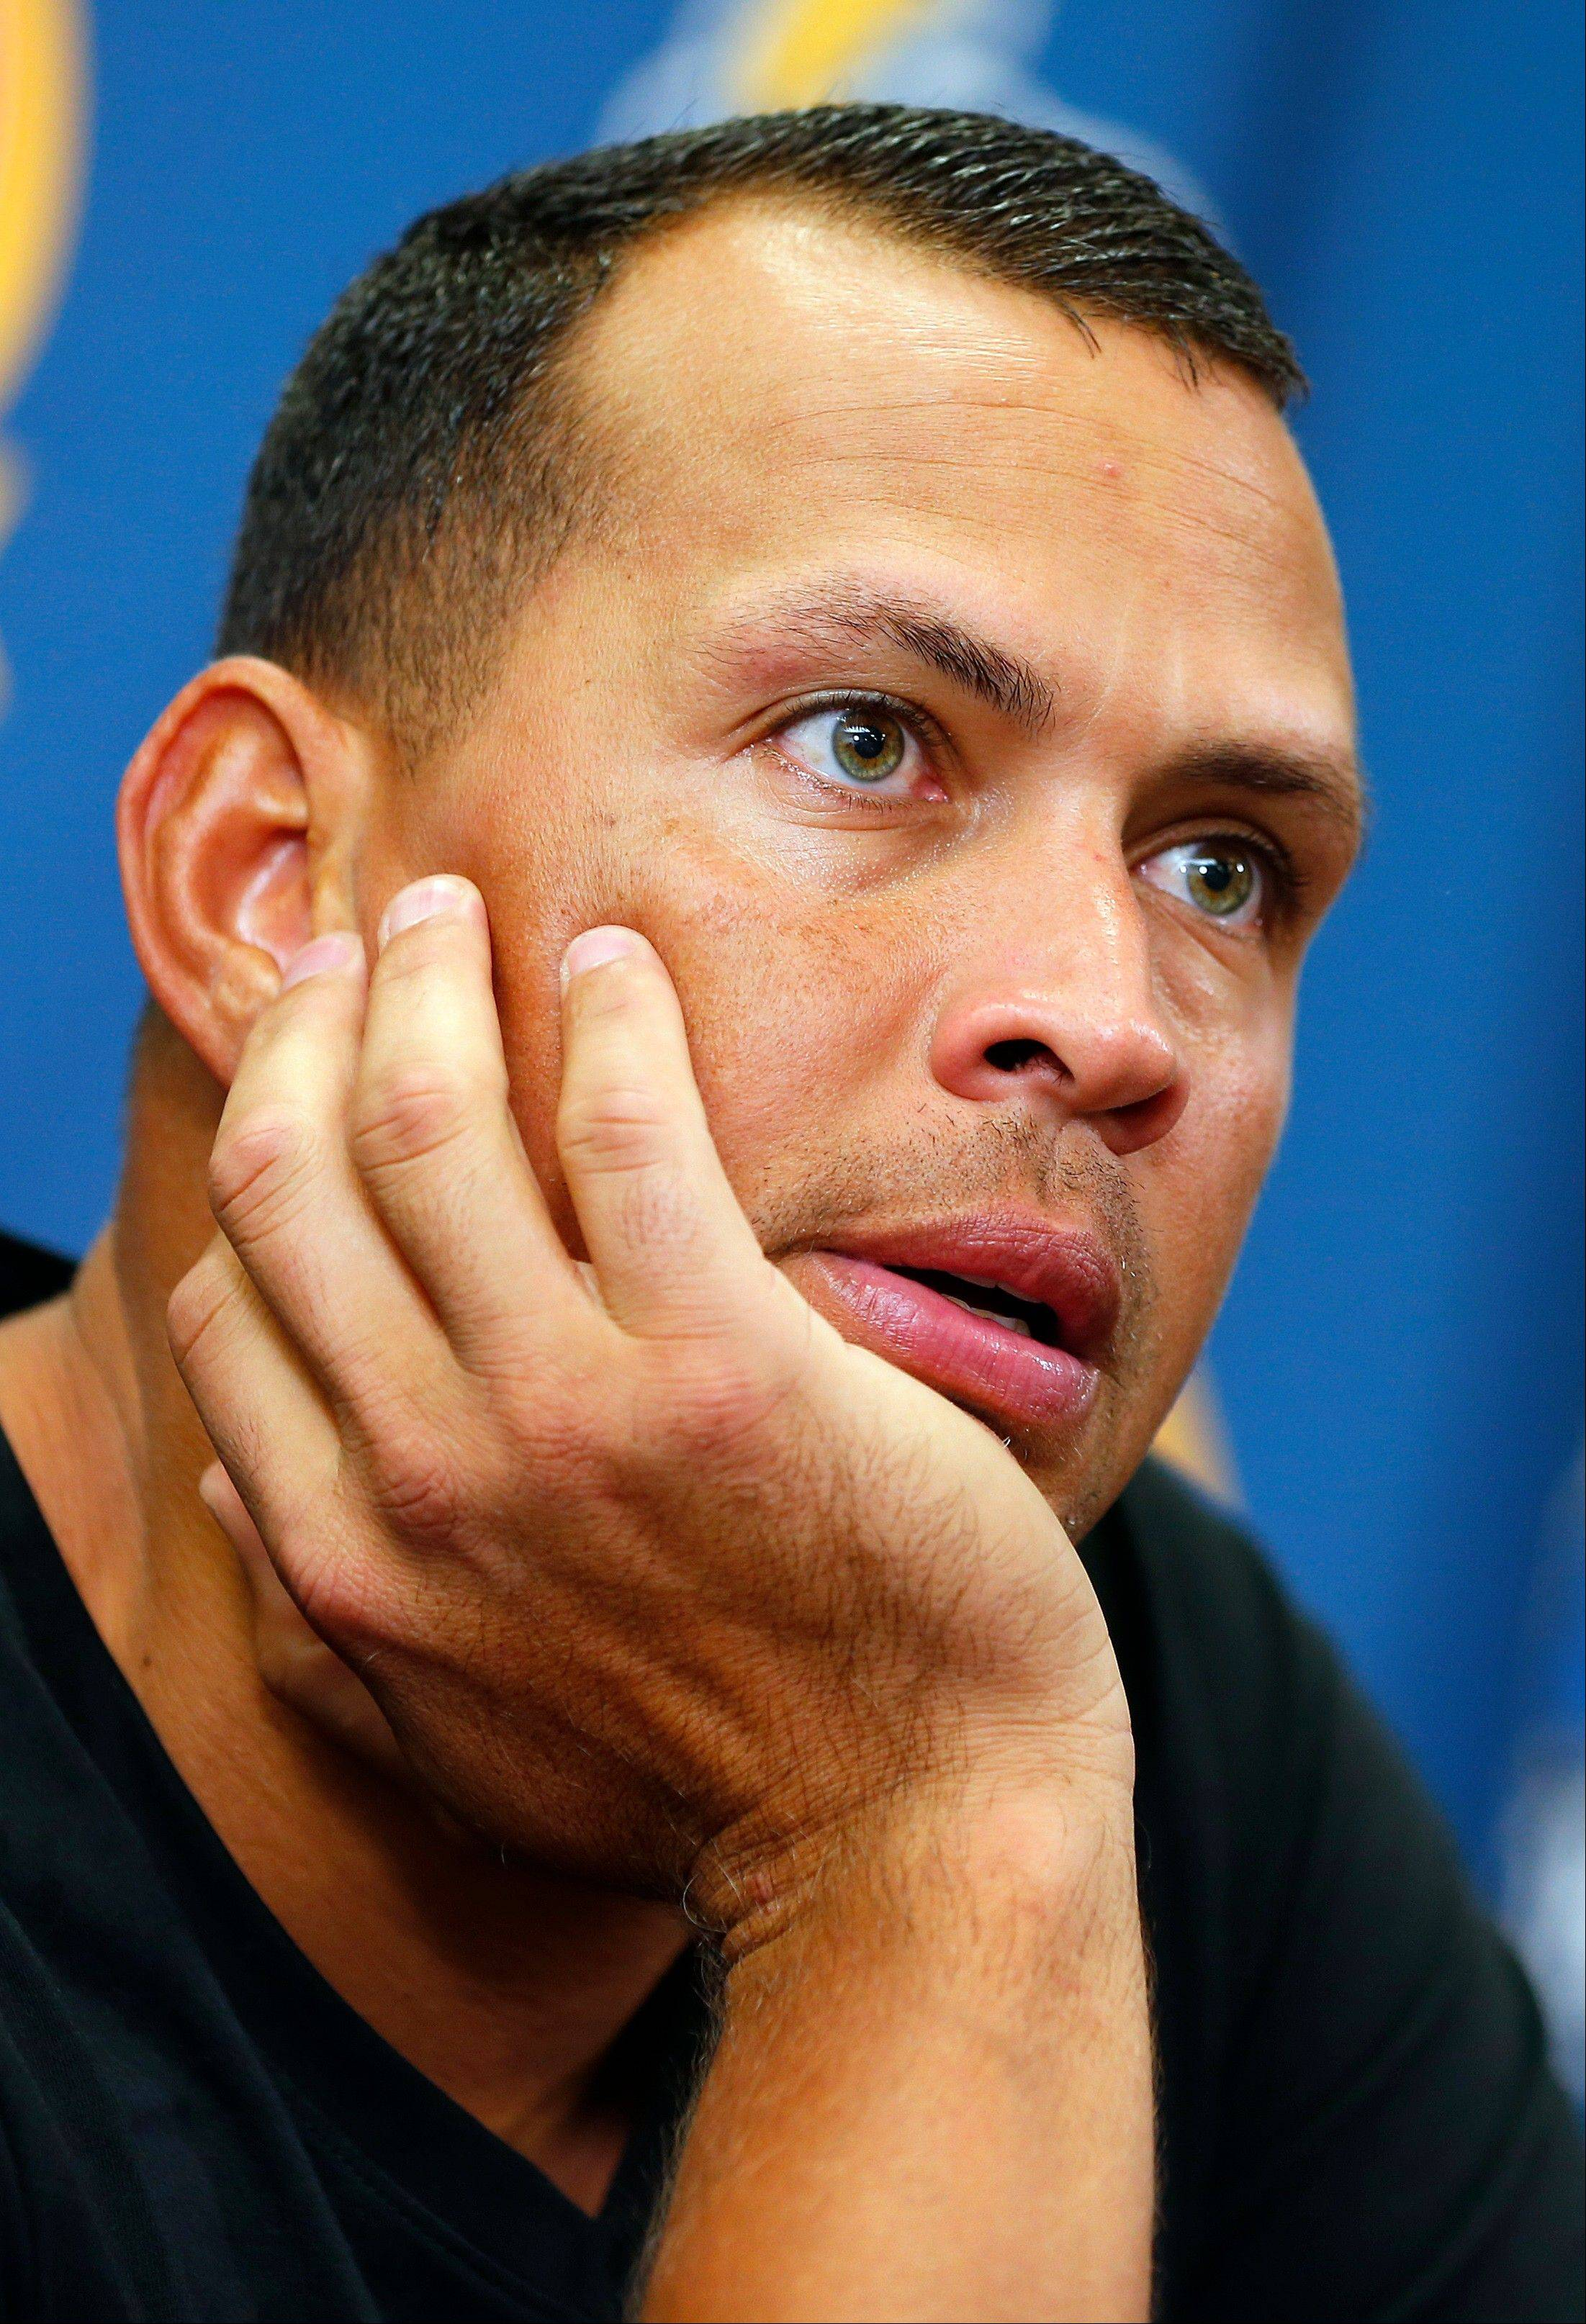 Third baseman Alex Rodriguez is expected to be in the lineup Monday night when the Yankees visit U.S. Cellular Field.